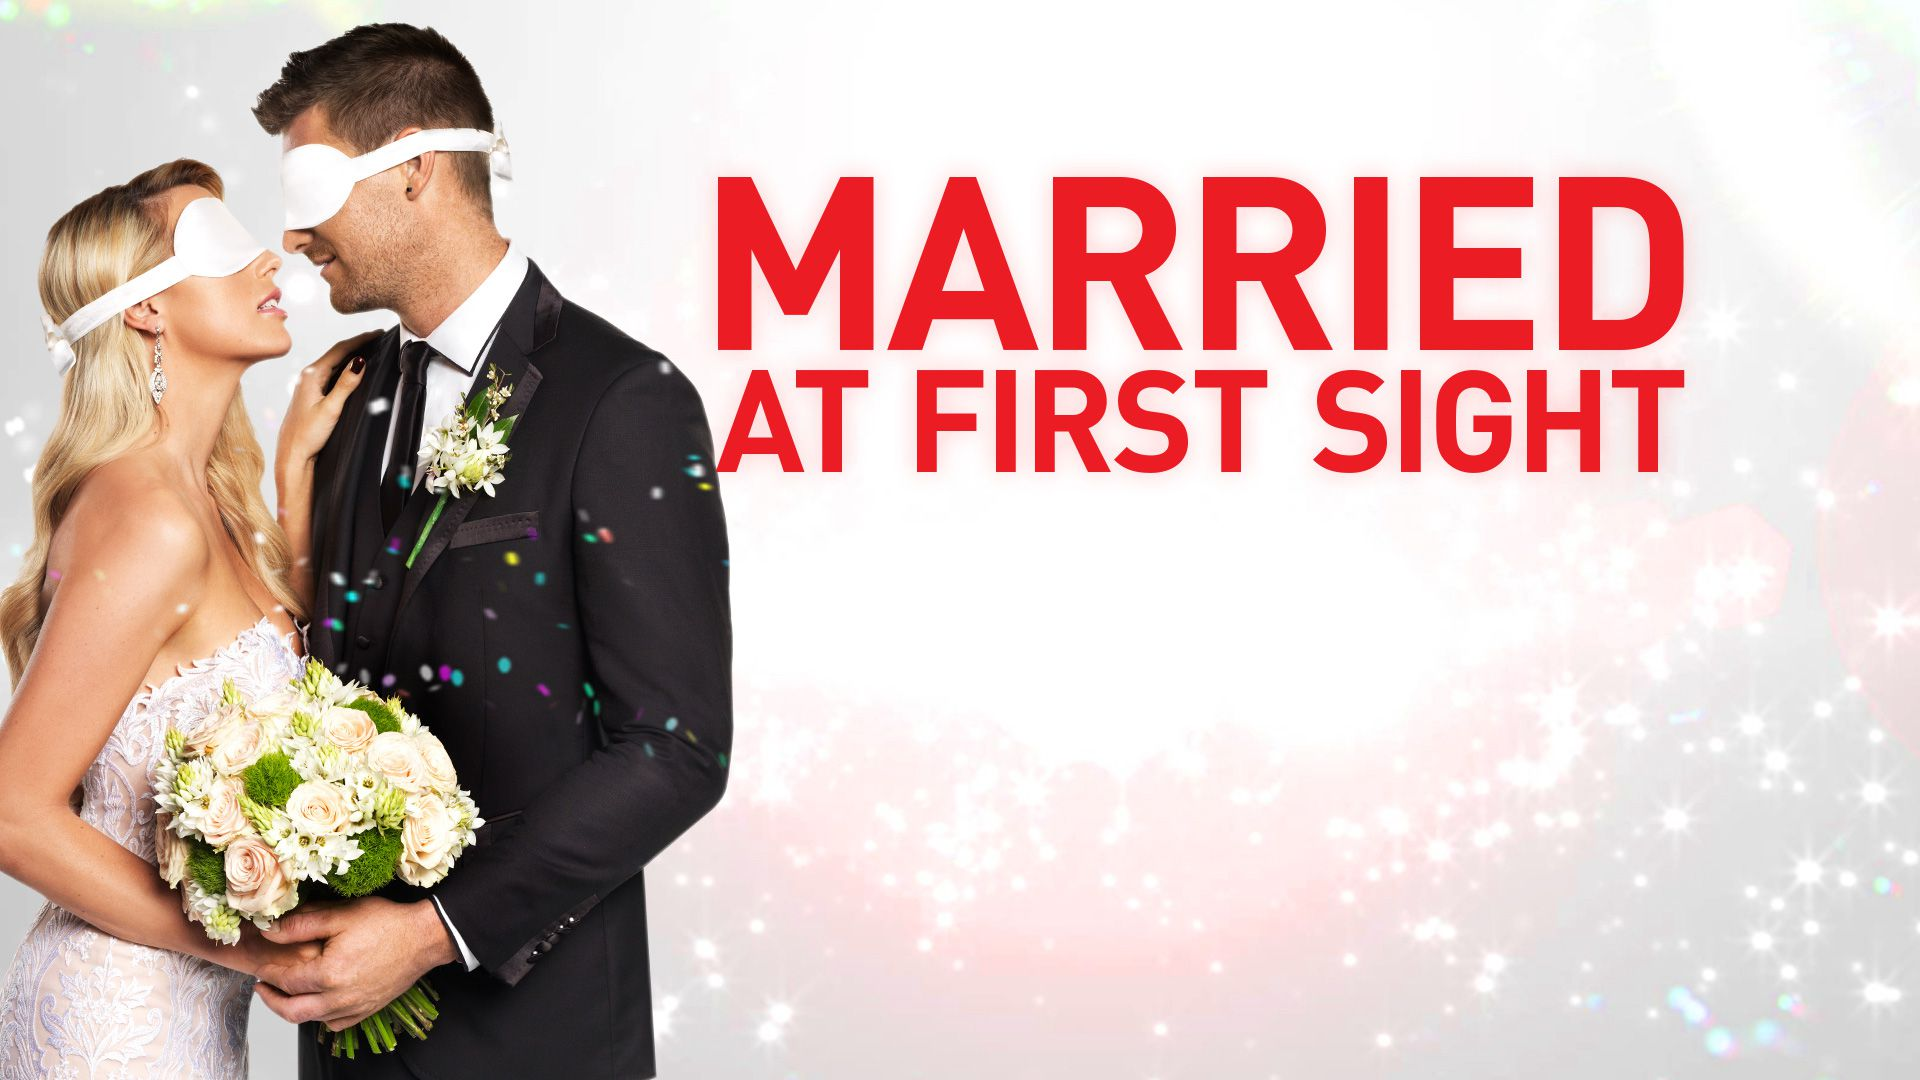 Afbeeldingsresultaat voor married at first sight